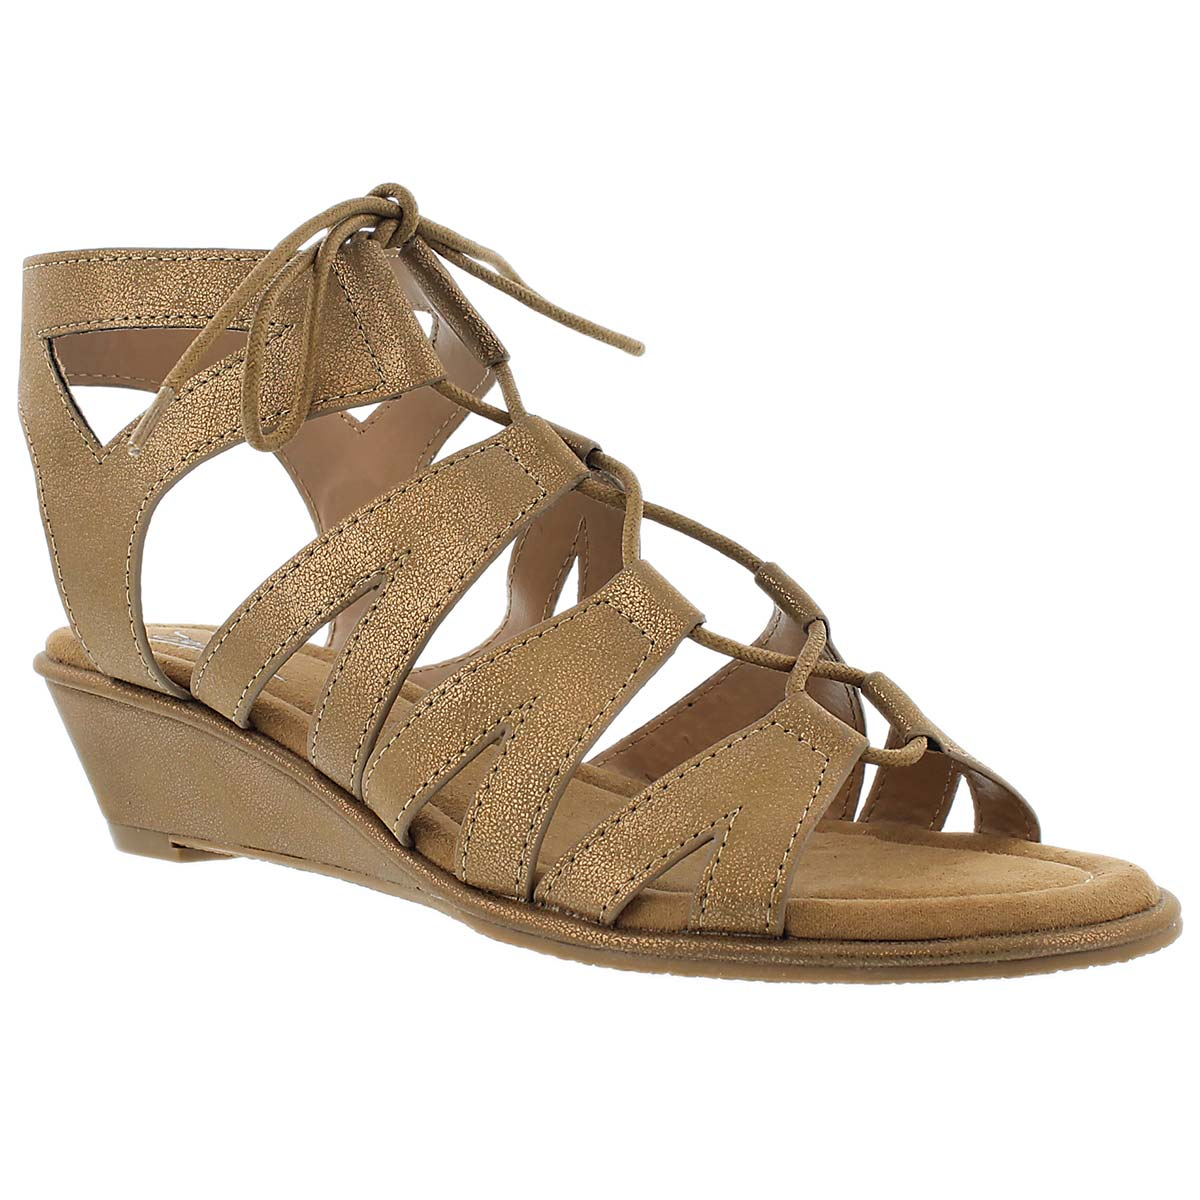 Women's BEYONCE copper wedge gladiator sandals